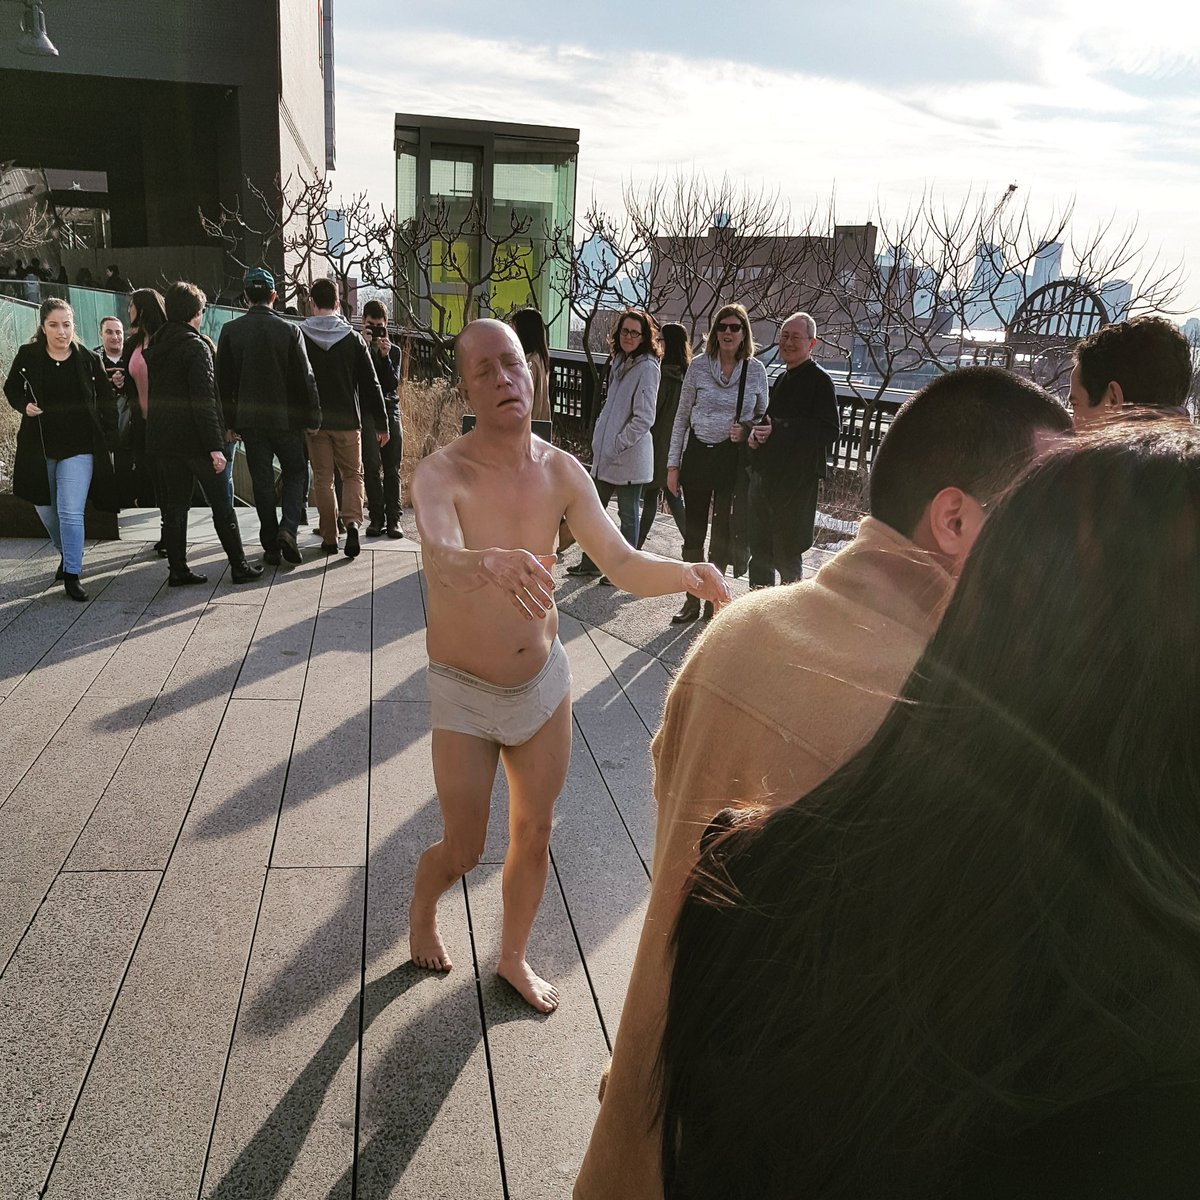 Normal. Ouais normal.  #trip #travel #frenchpeopleeverywhere #thehighline #NYC #newyorkcity #usa #america #creepy<br>http://pic.twitter.com/w7ltyB3n3m